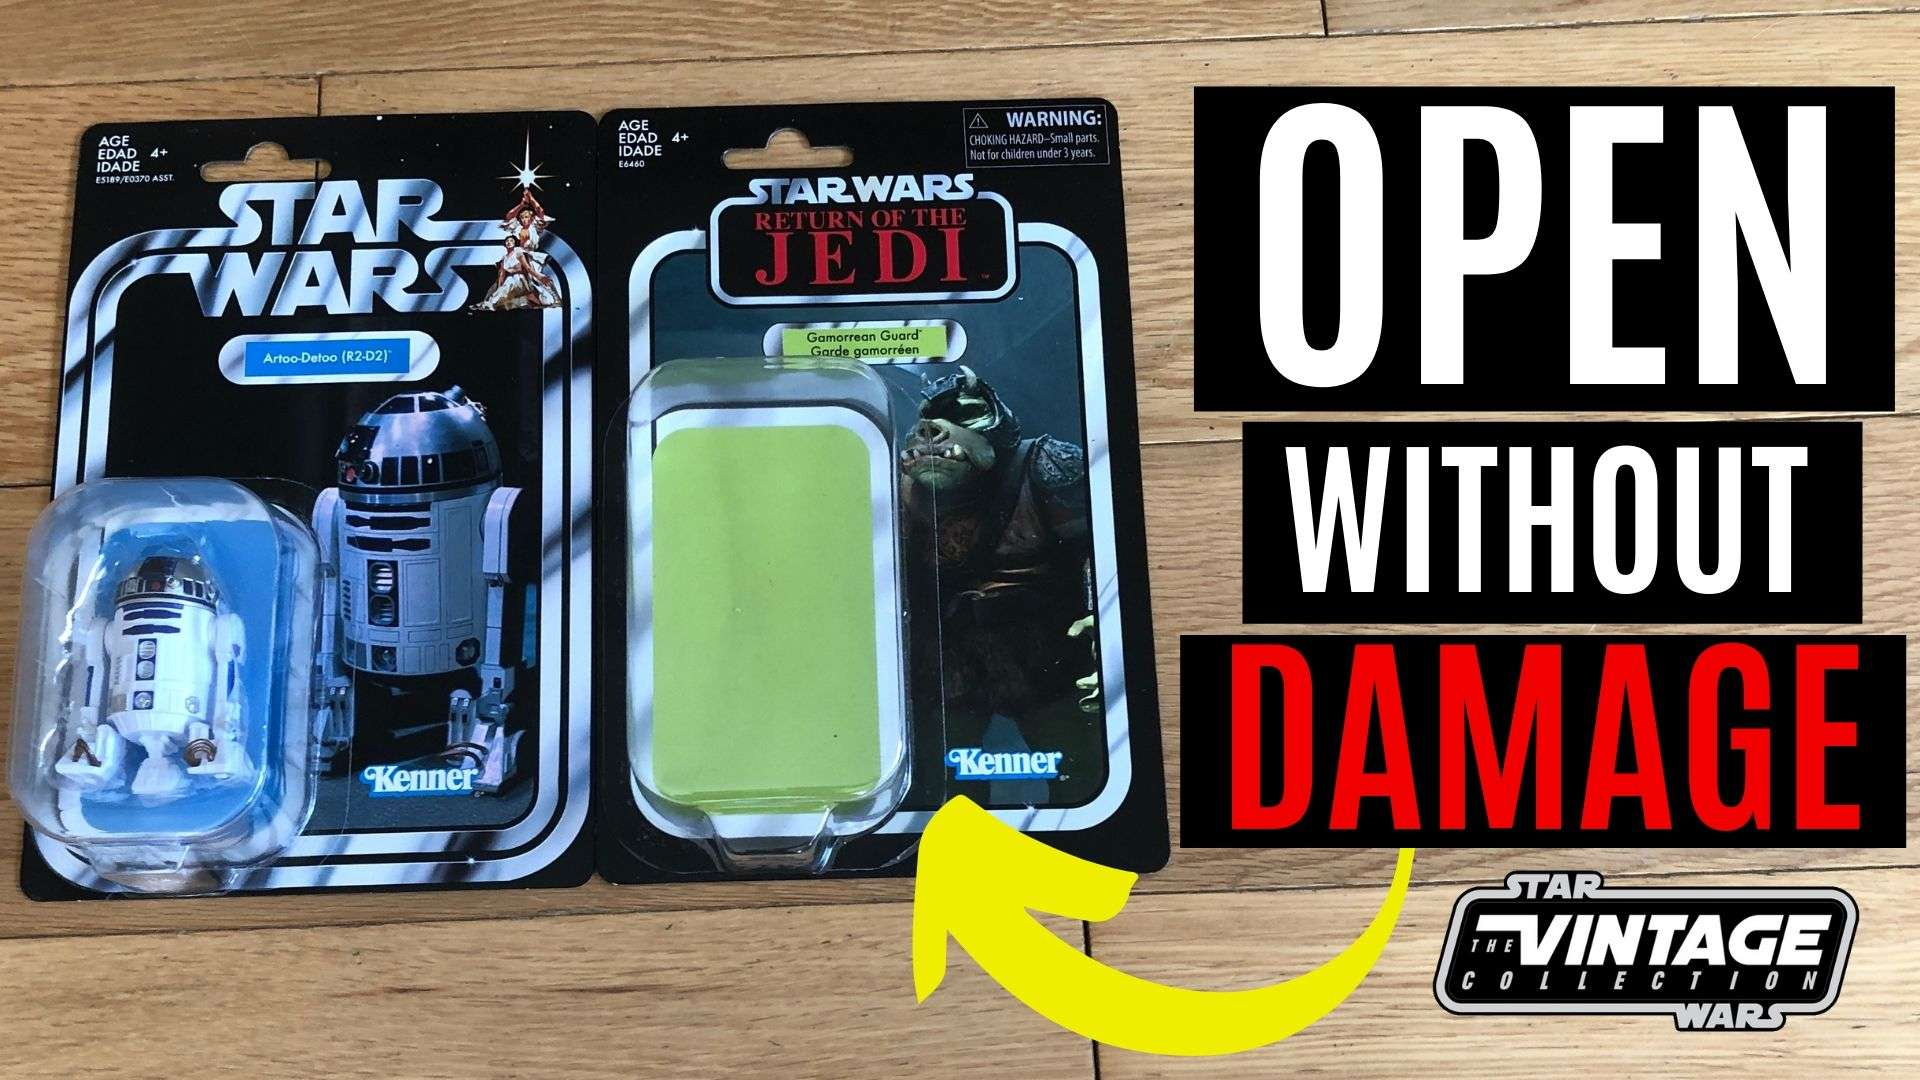 How to open Star Wars action figures